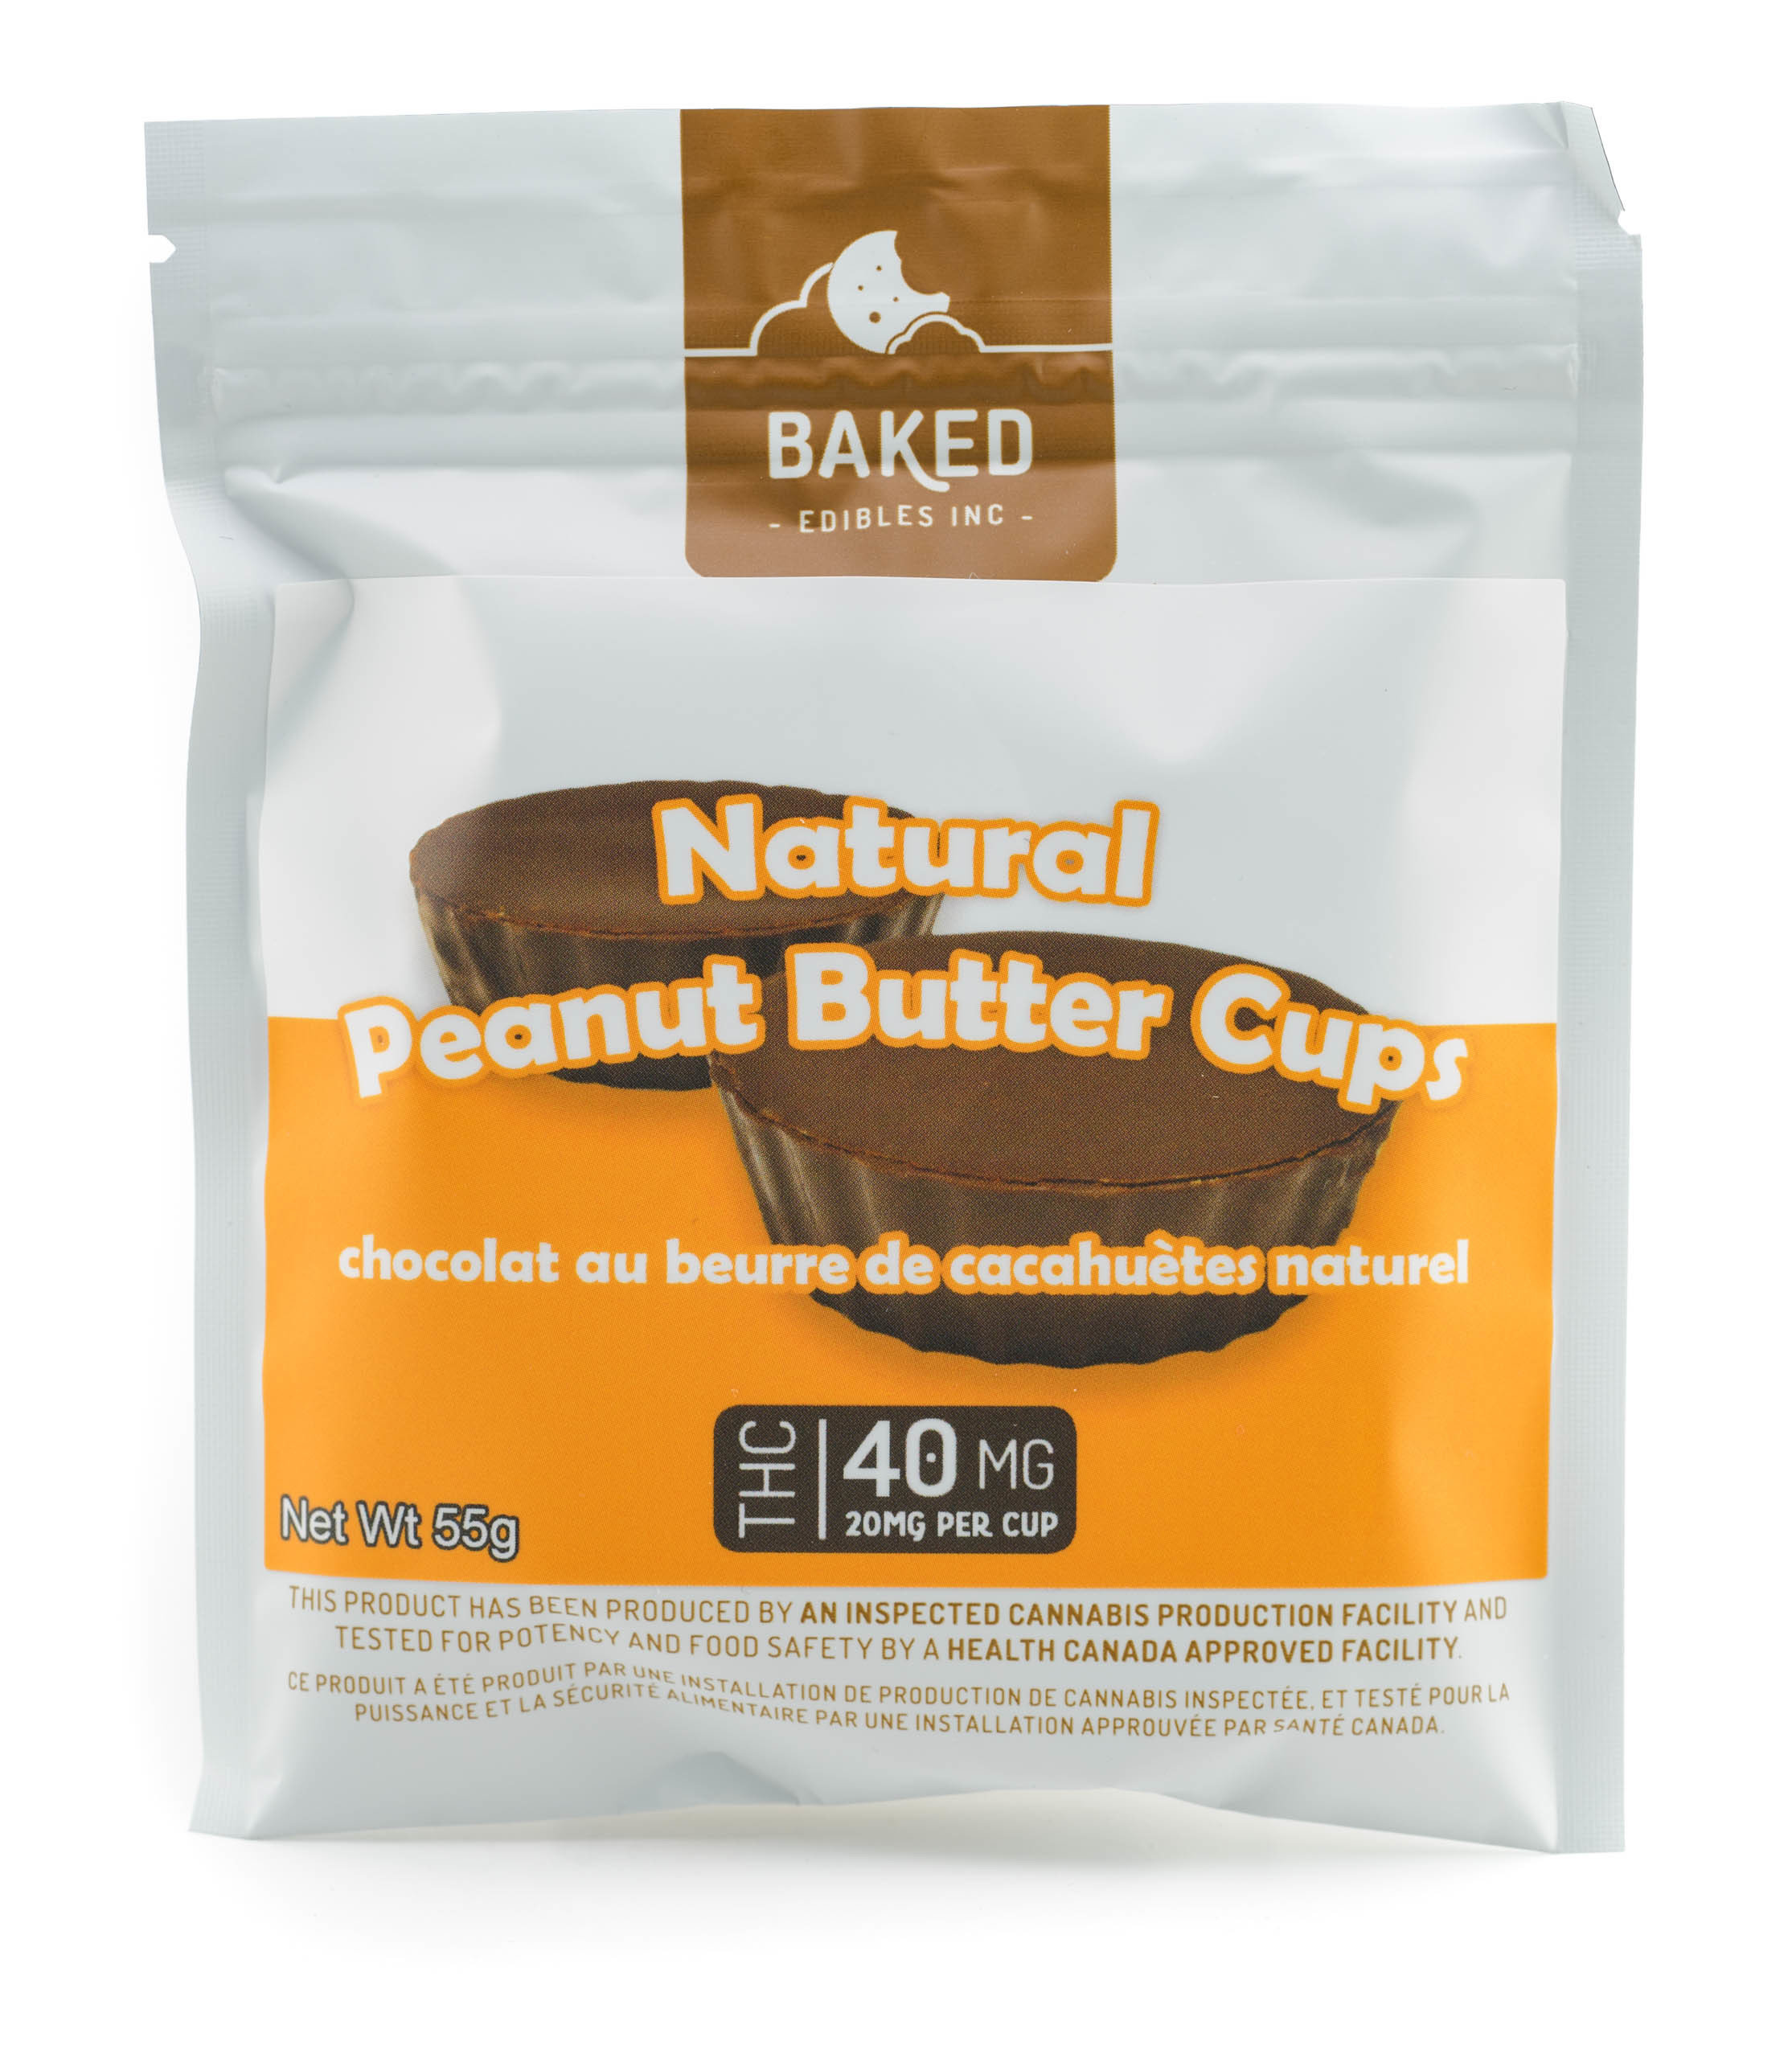 Peanut Butter Cups (40mg THC) by Baked Edibles 00013